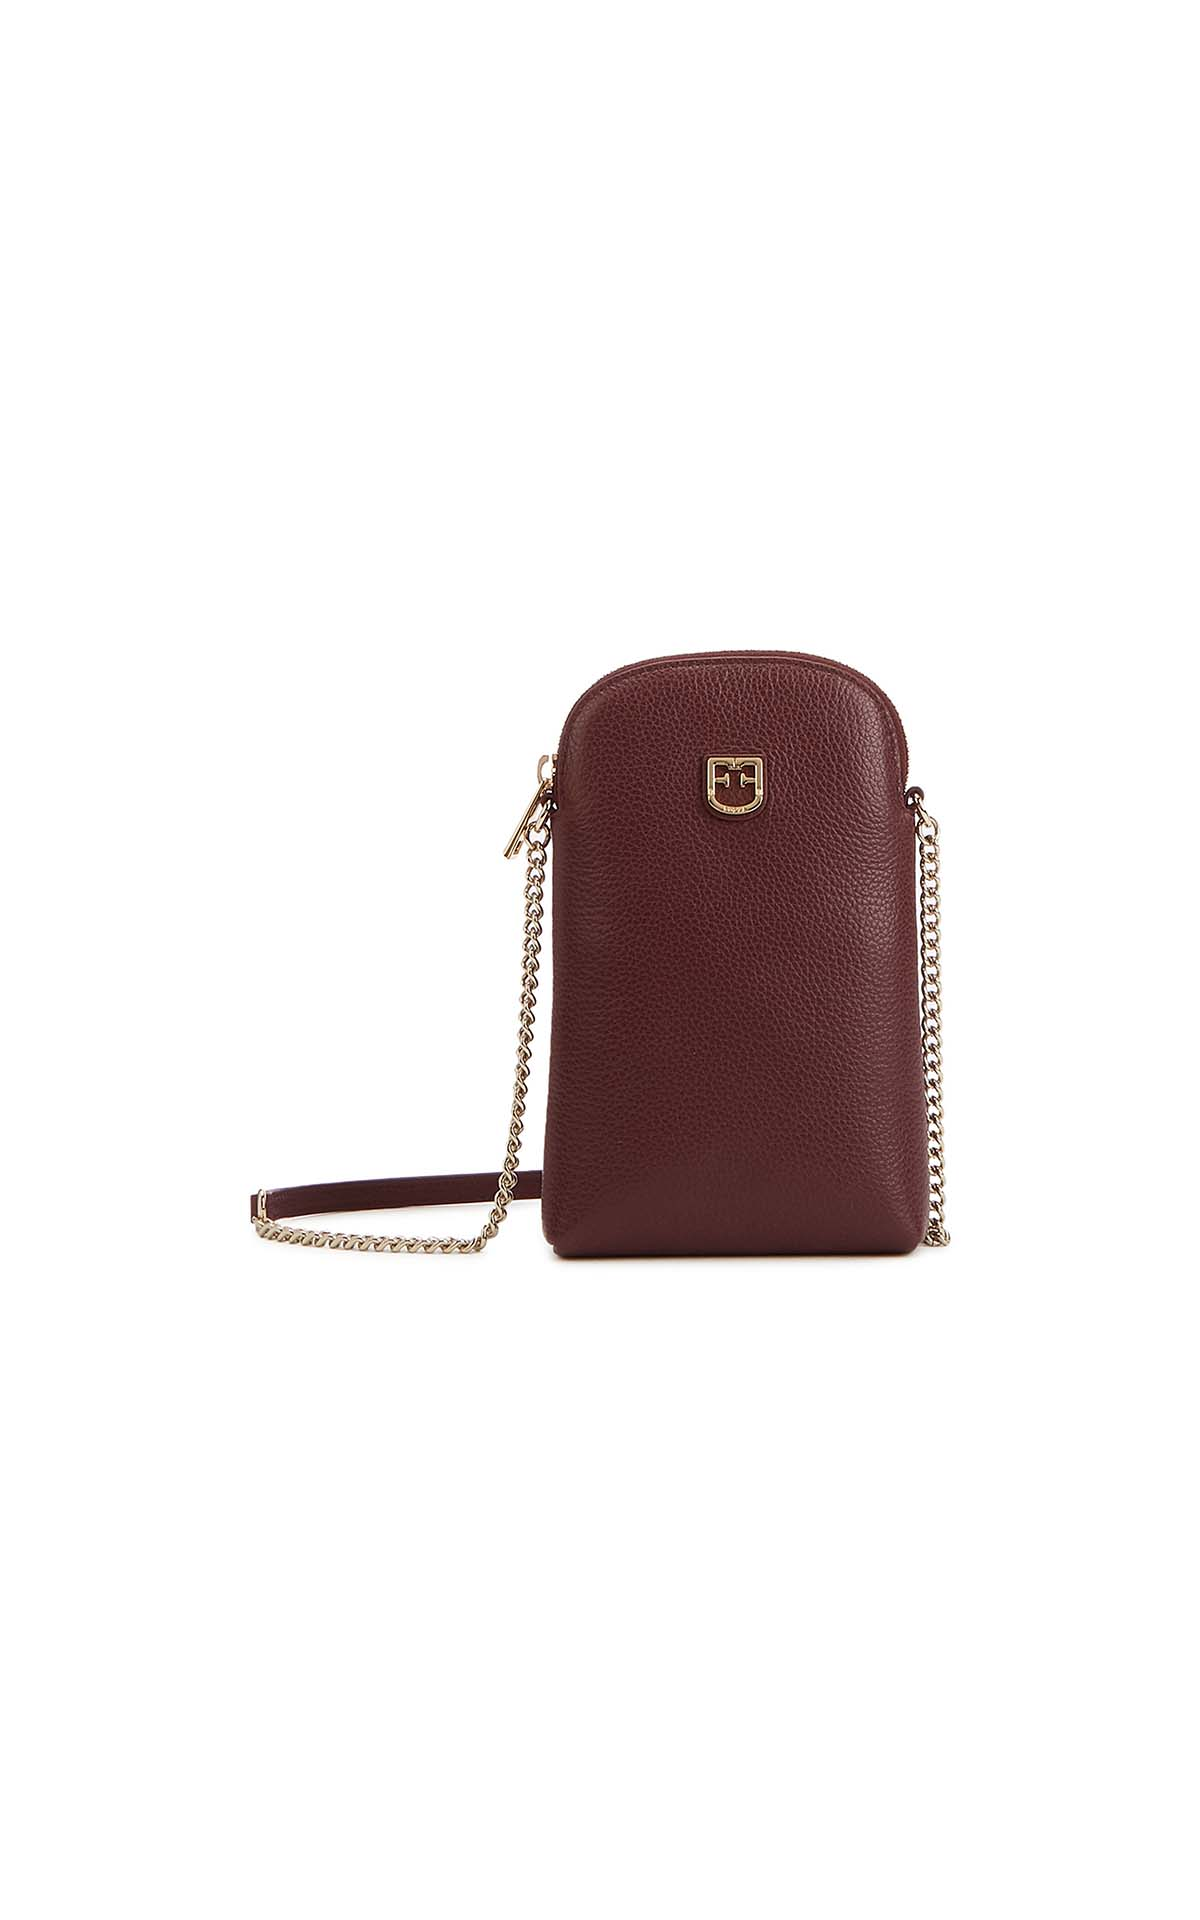 Furla joy small phoneholder bag burgundy at The Bicester Village Shopping Collection